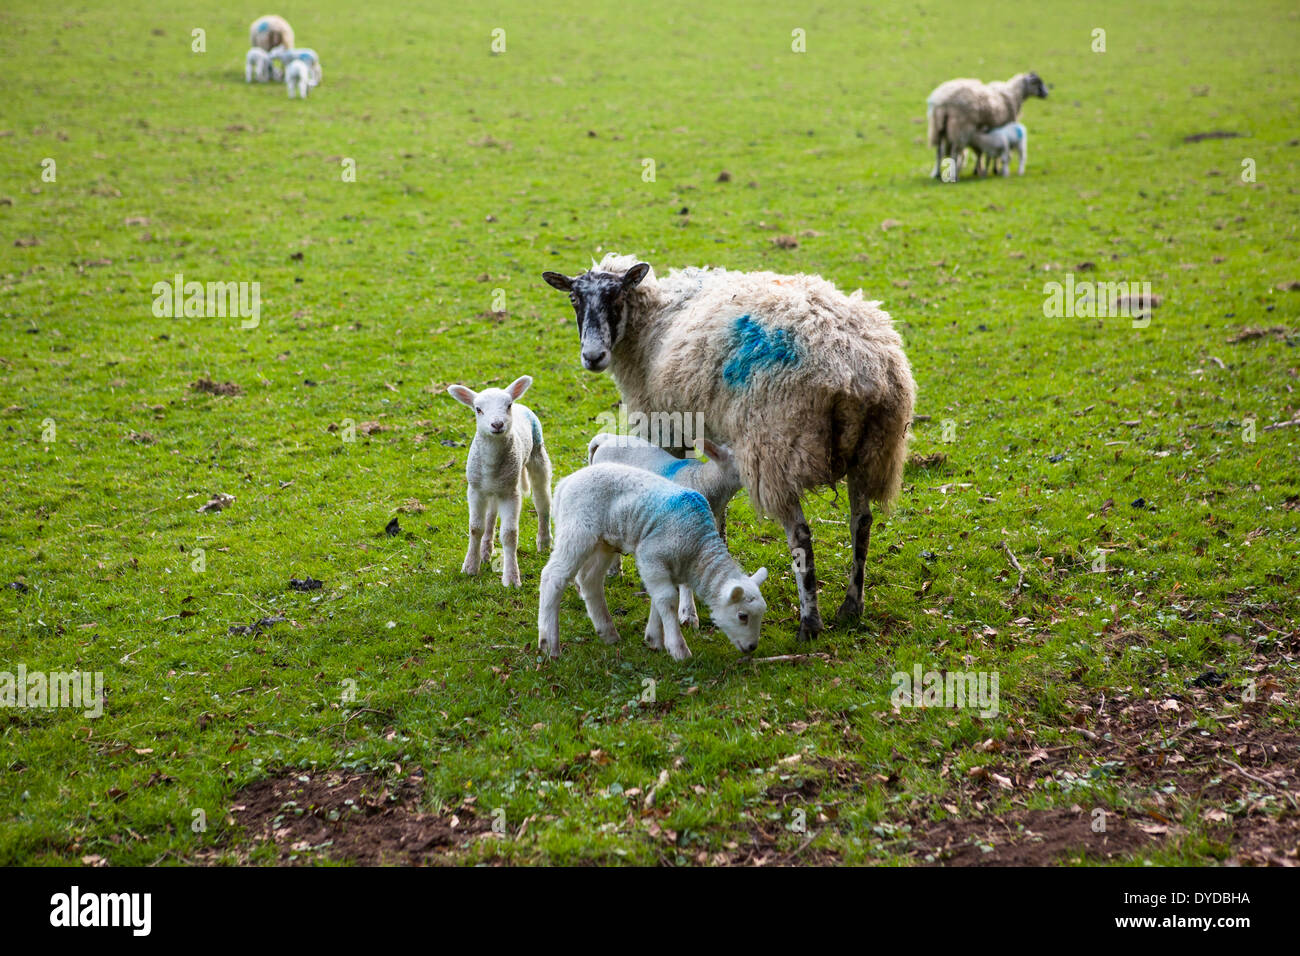 Ewe and lambs in Derbyshire field. - Stock Image